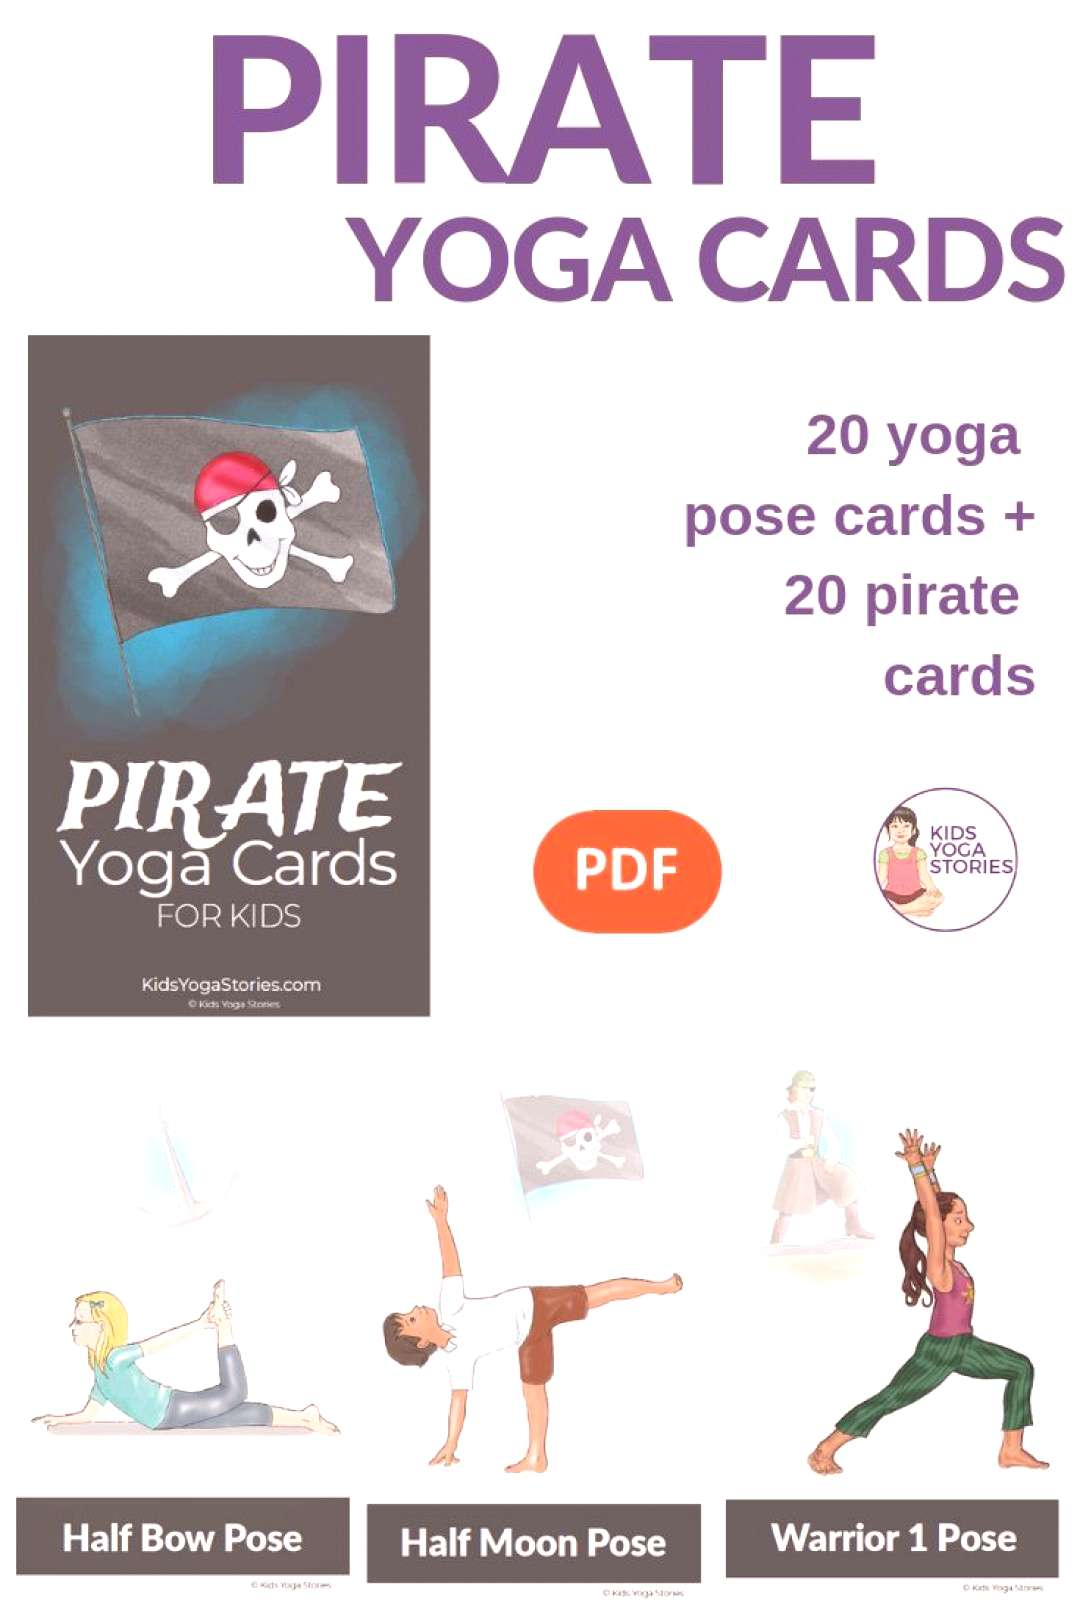 Pirate Yoga Cards for Kids Ahoy, Me Hearties! Bring yoga and movement to your little buccaneers wi